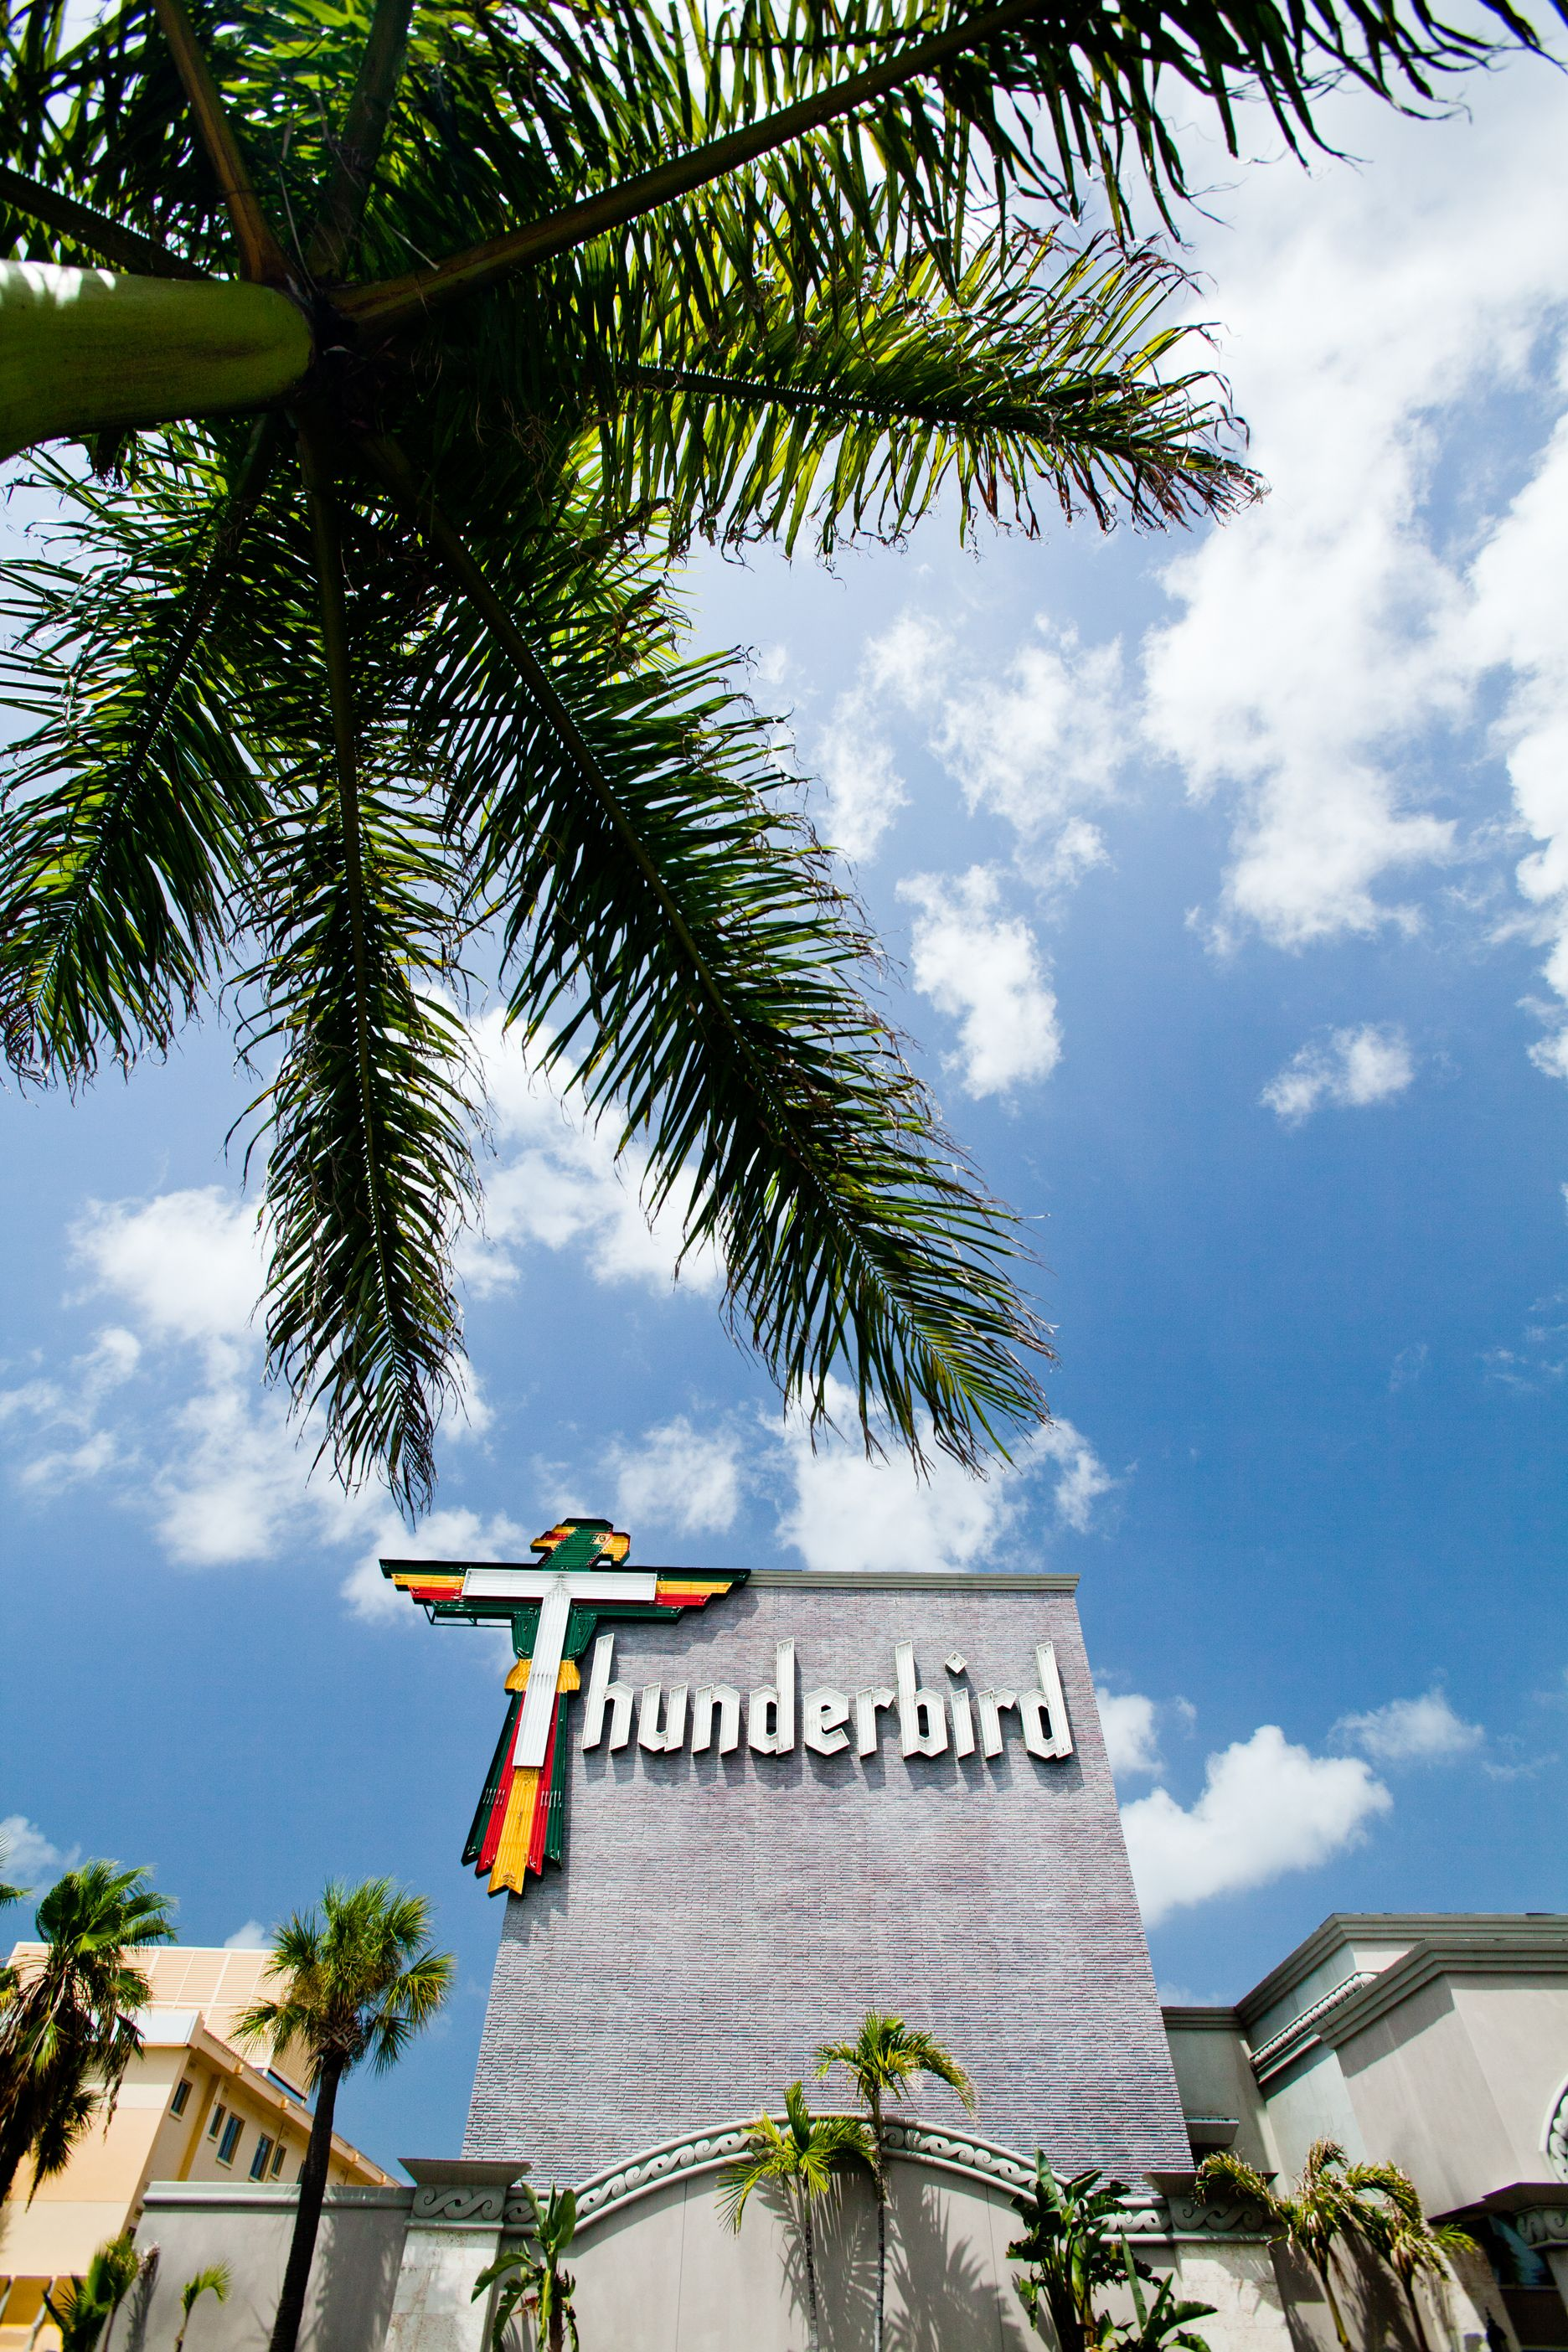 Thunderbird Beach Resort Treasure Island